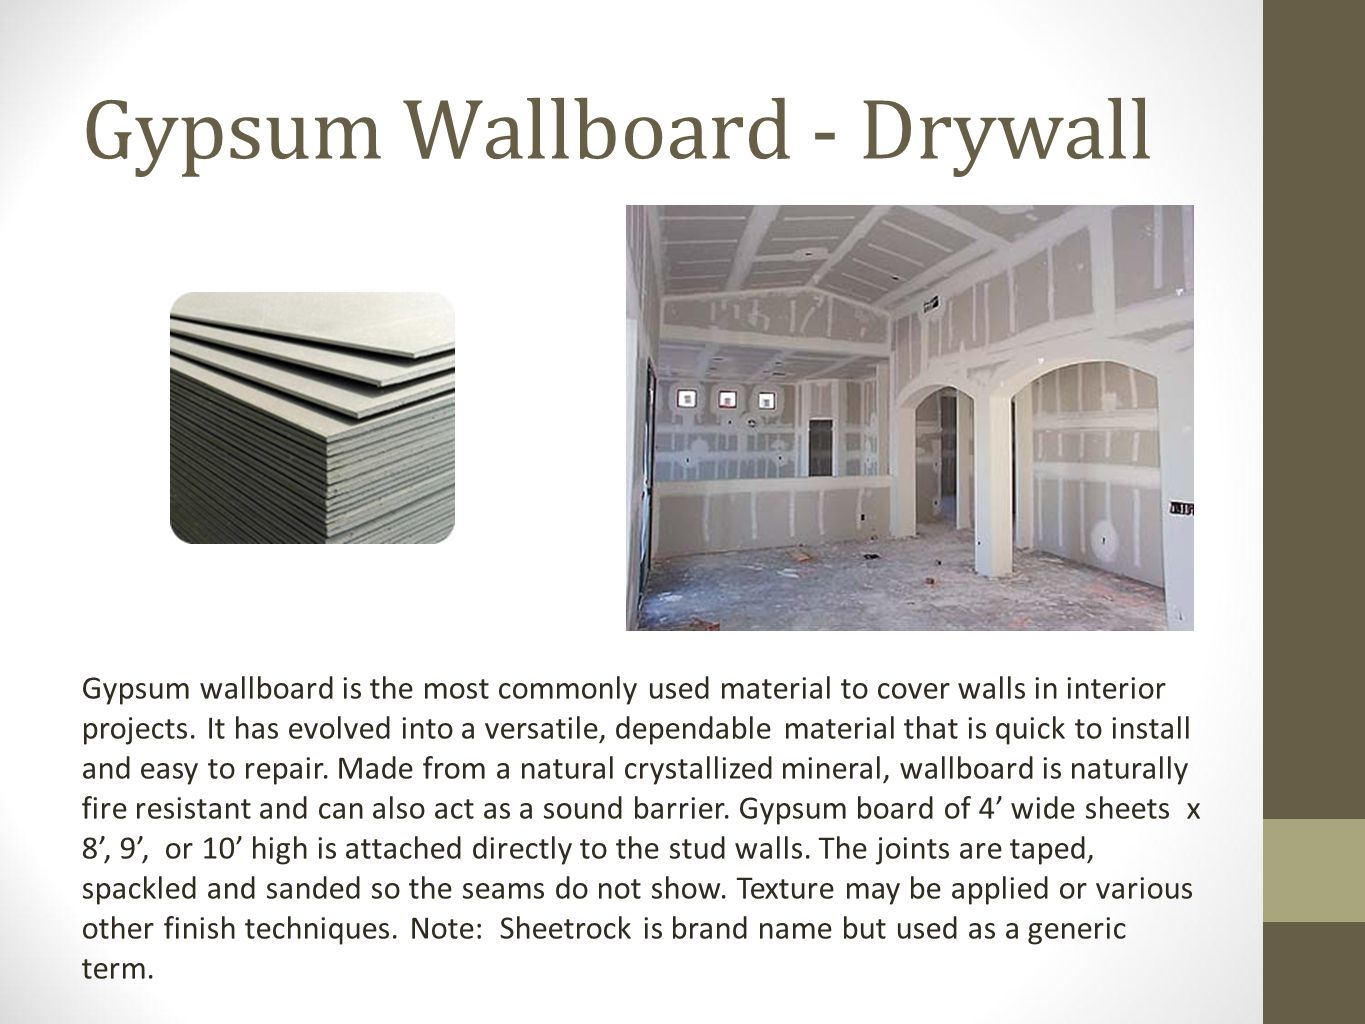 Gypsum Wallboard - Drywall